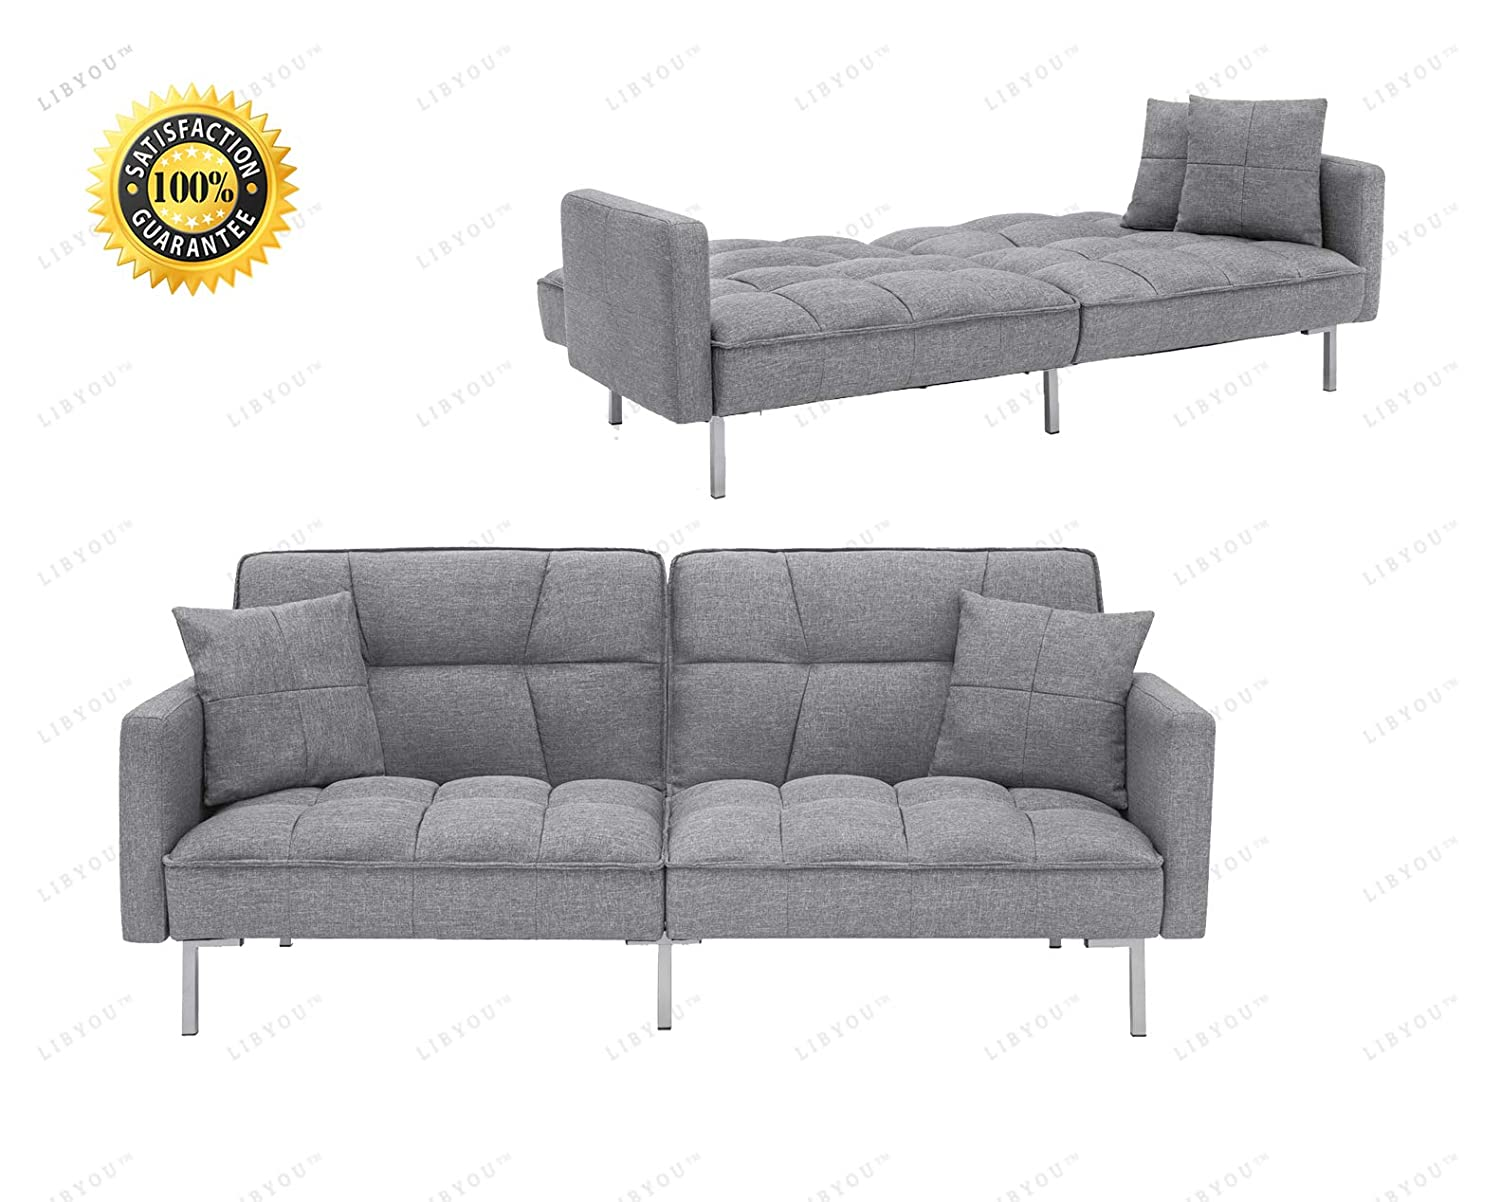 Amazon.com: COLIBROX_Armrest Chair, Sofa,Couch,Living Room ...